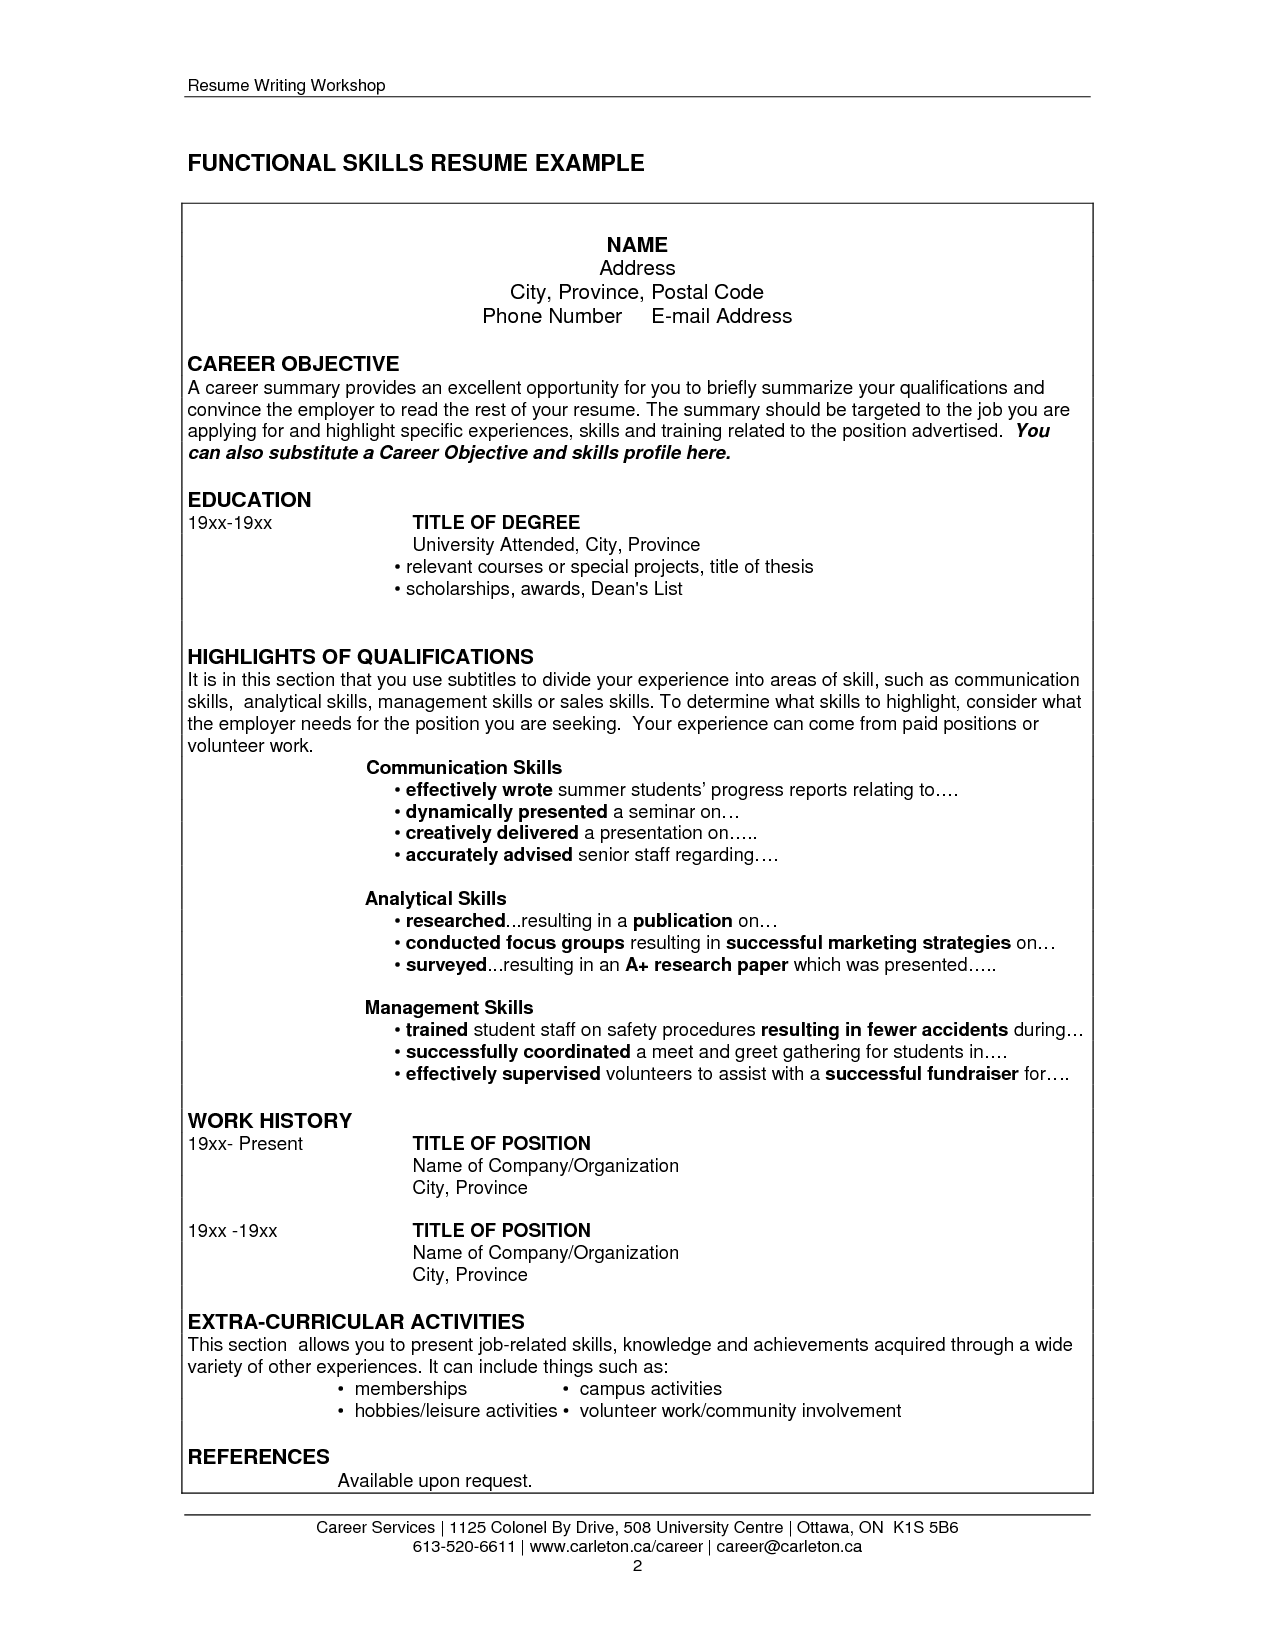 Resume Templates Tamu Enchanting Image Result For Skills Resume Format  Business  Pinterest